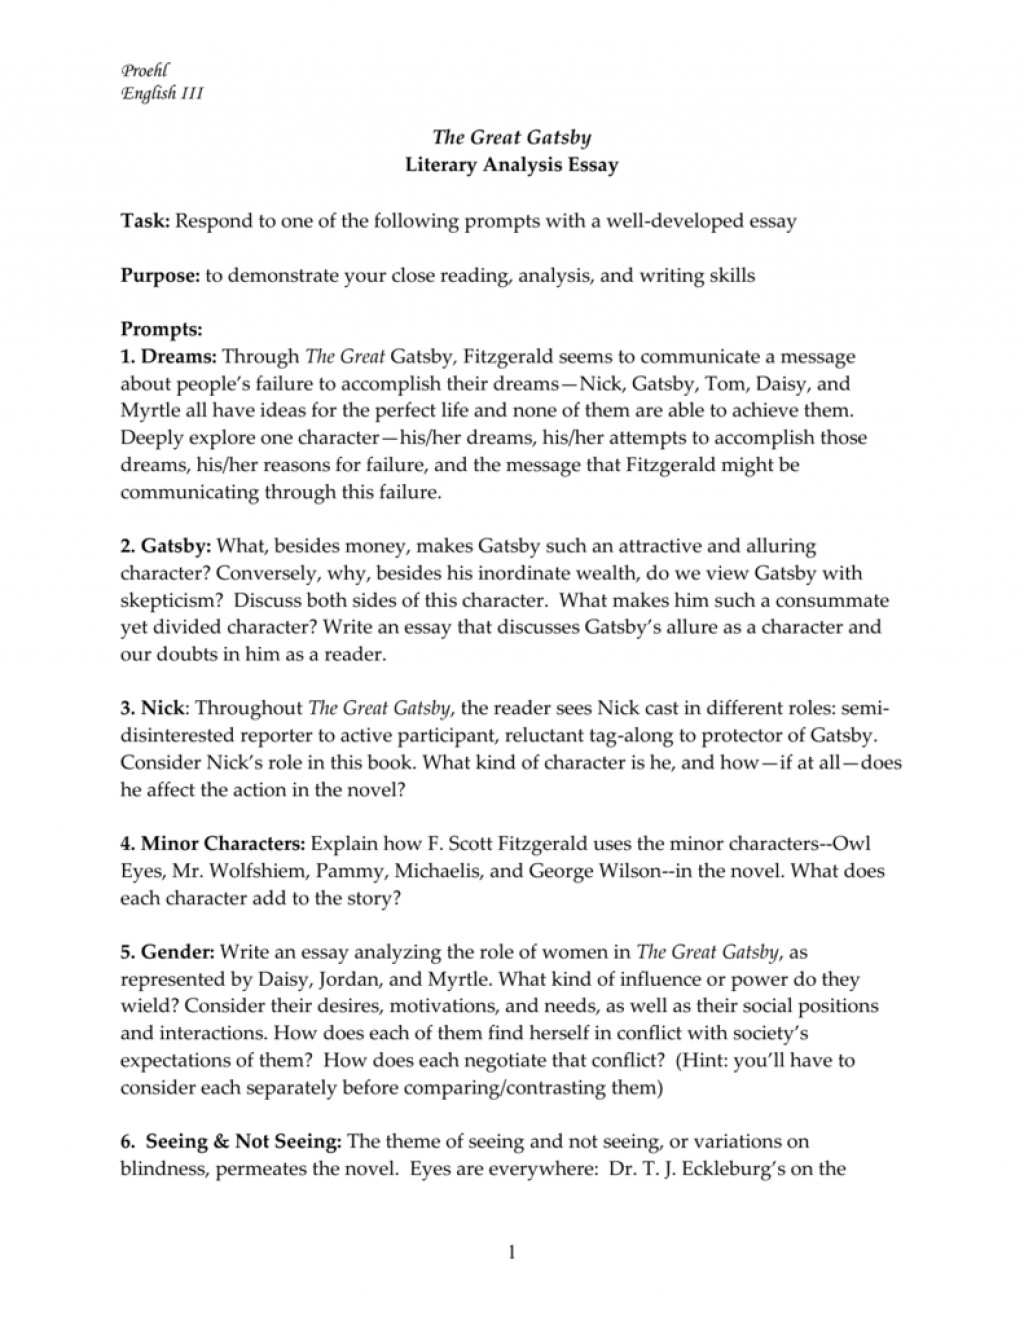 001 The Great Gatsby Essay 008001974 1 Singular Critical Pdf Questions Large